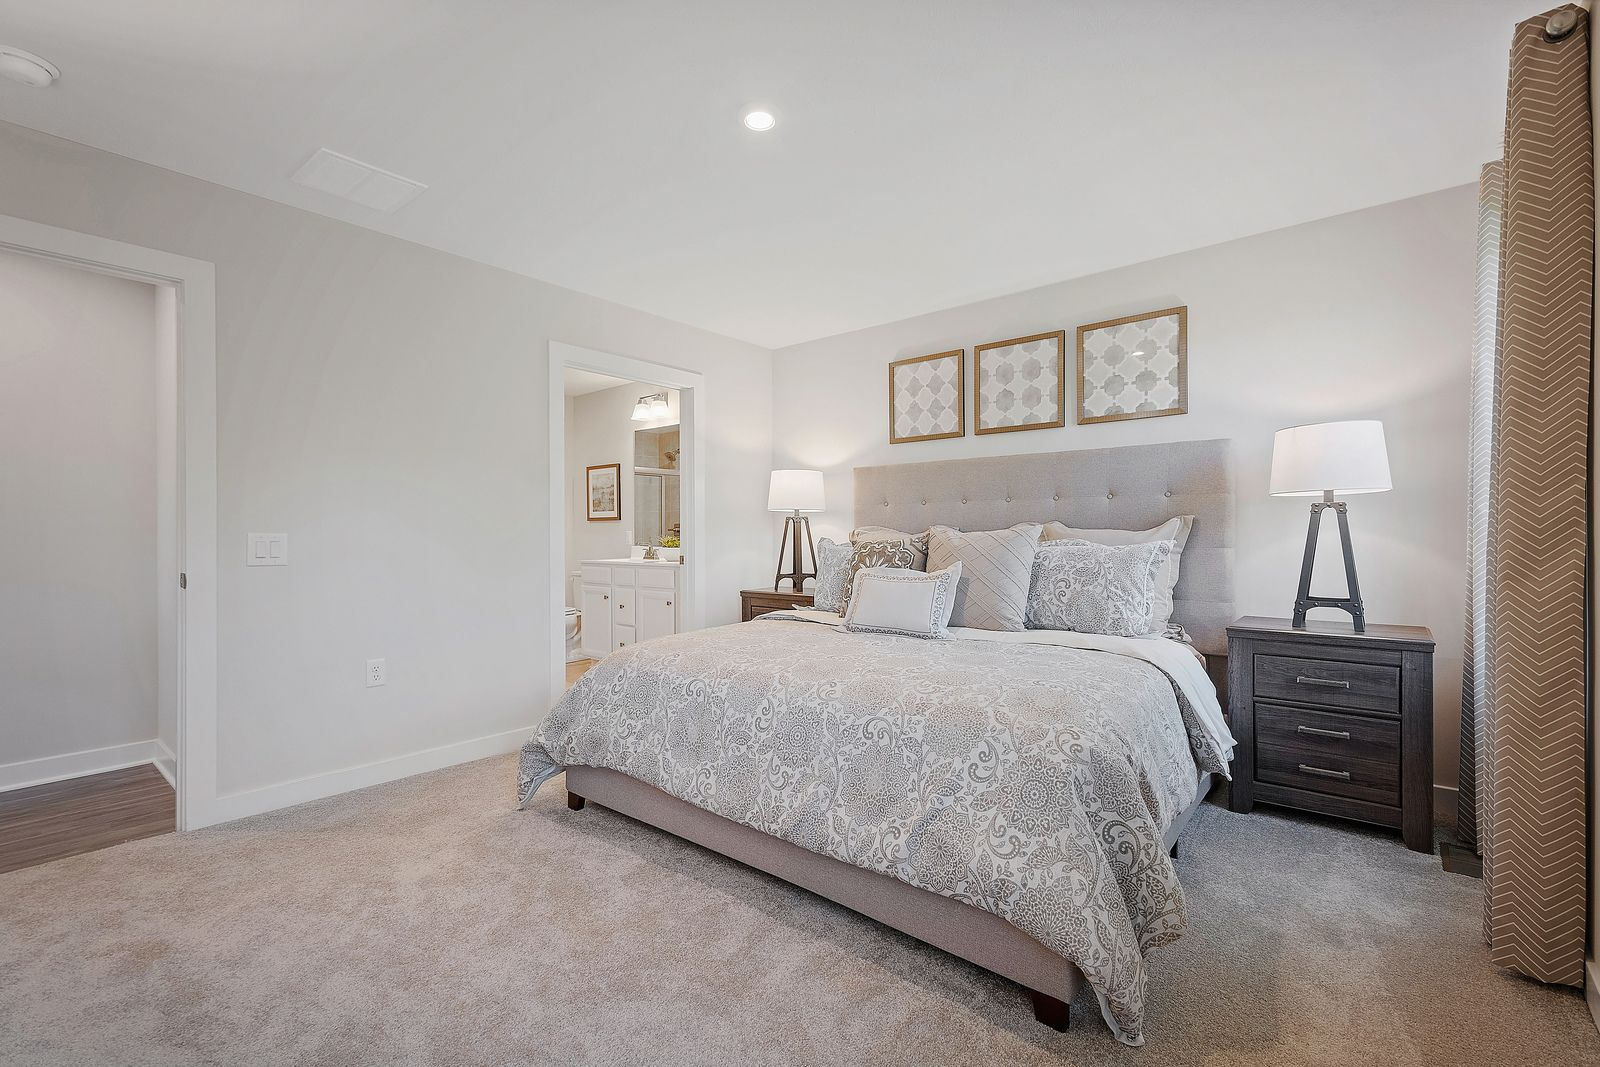 Bedroom featured in the Grand Bahama Basement By Ryan Homes in Washington, WV